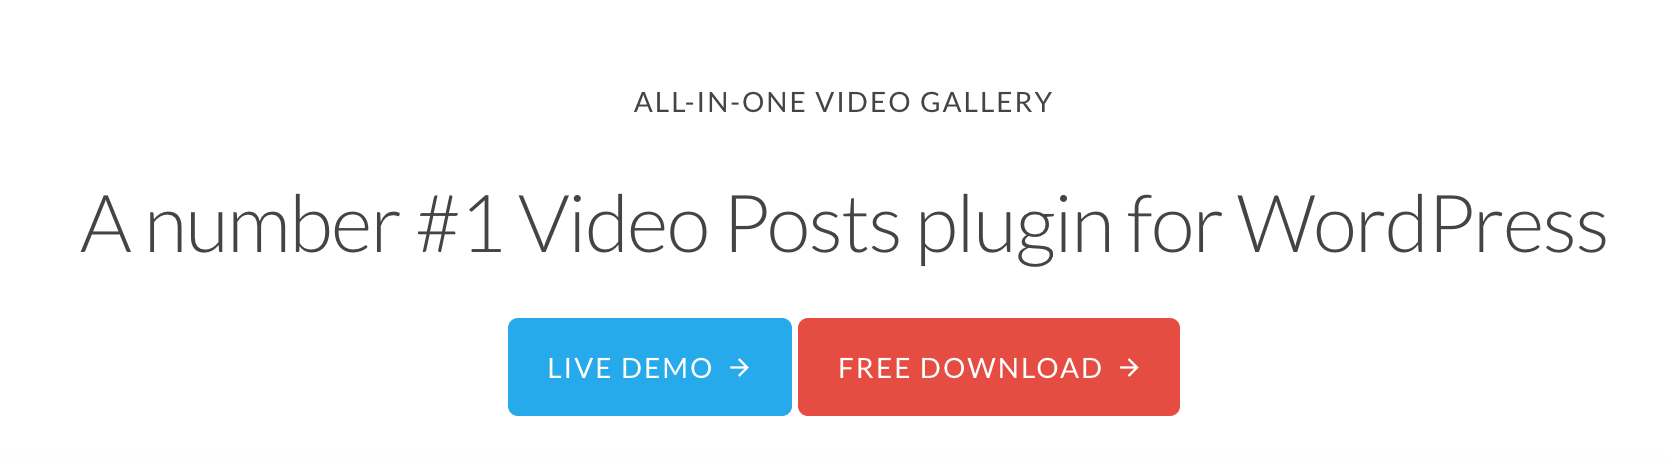 All-in-One Video Gallery Call-to-Action Buttons